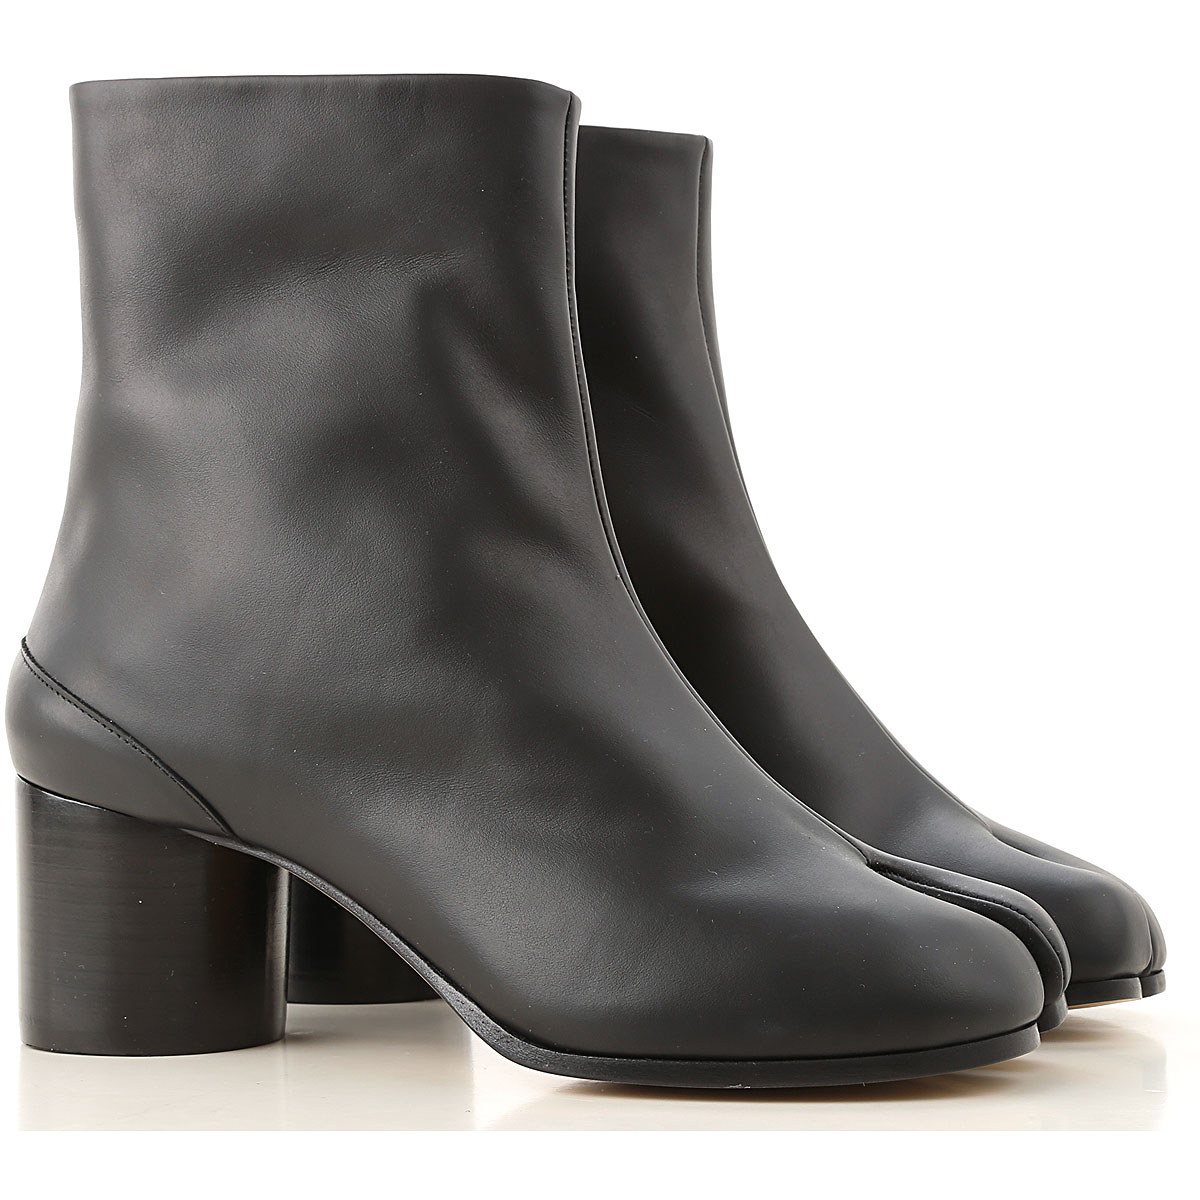 Maison Martin Margiela Boots for Women, Booties On Sale, Black, Leather, 2019, 10 9